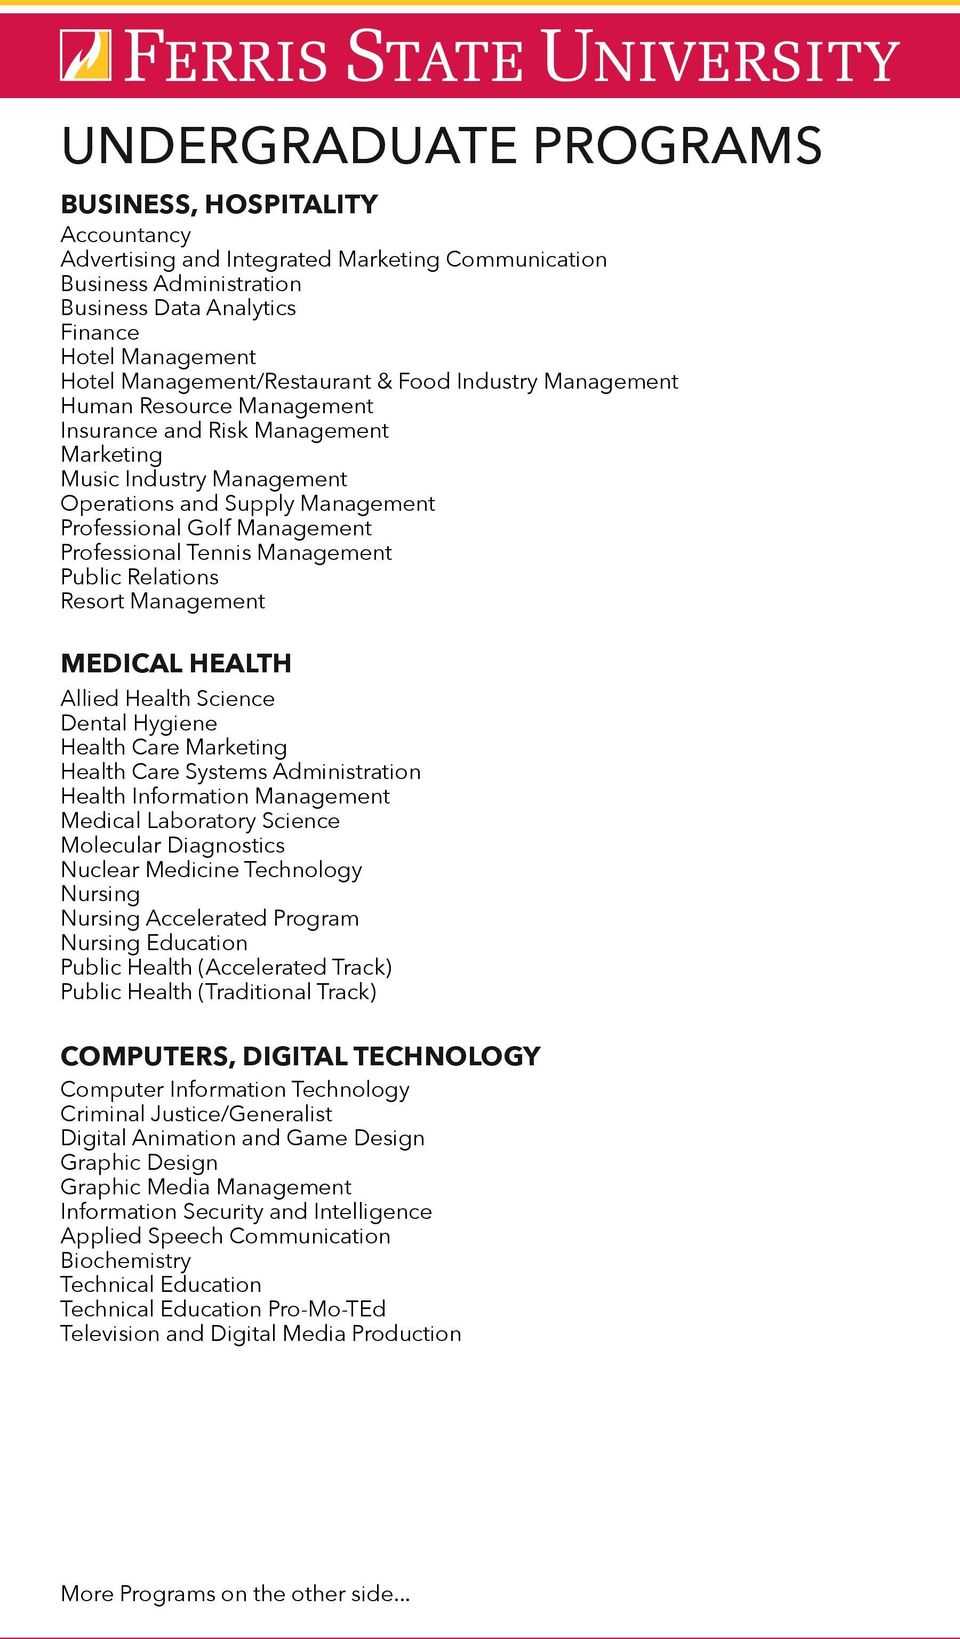 Management Professional Tennis Management Public Relations Resort Management MEDICAL HEALTH Allied Health Science Dental Hygiene Health Care Marketing Health Care Systems Administration Health